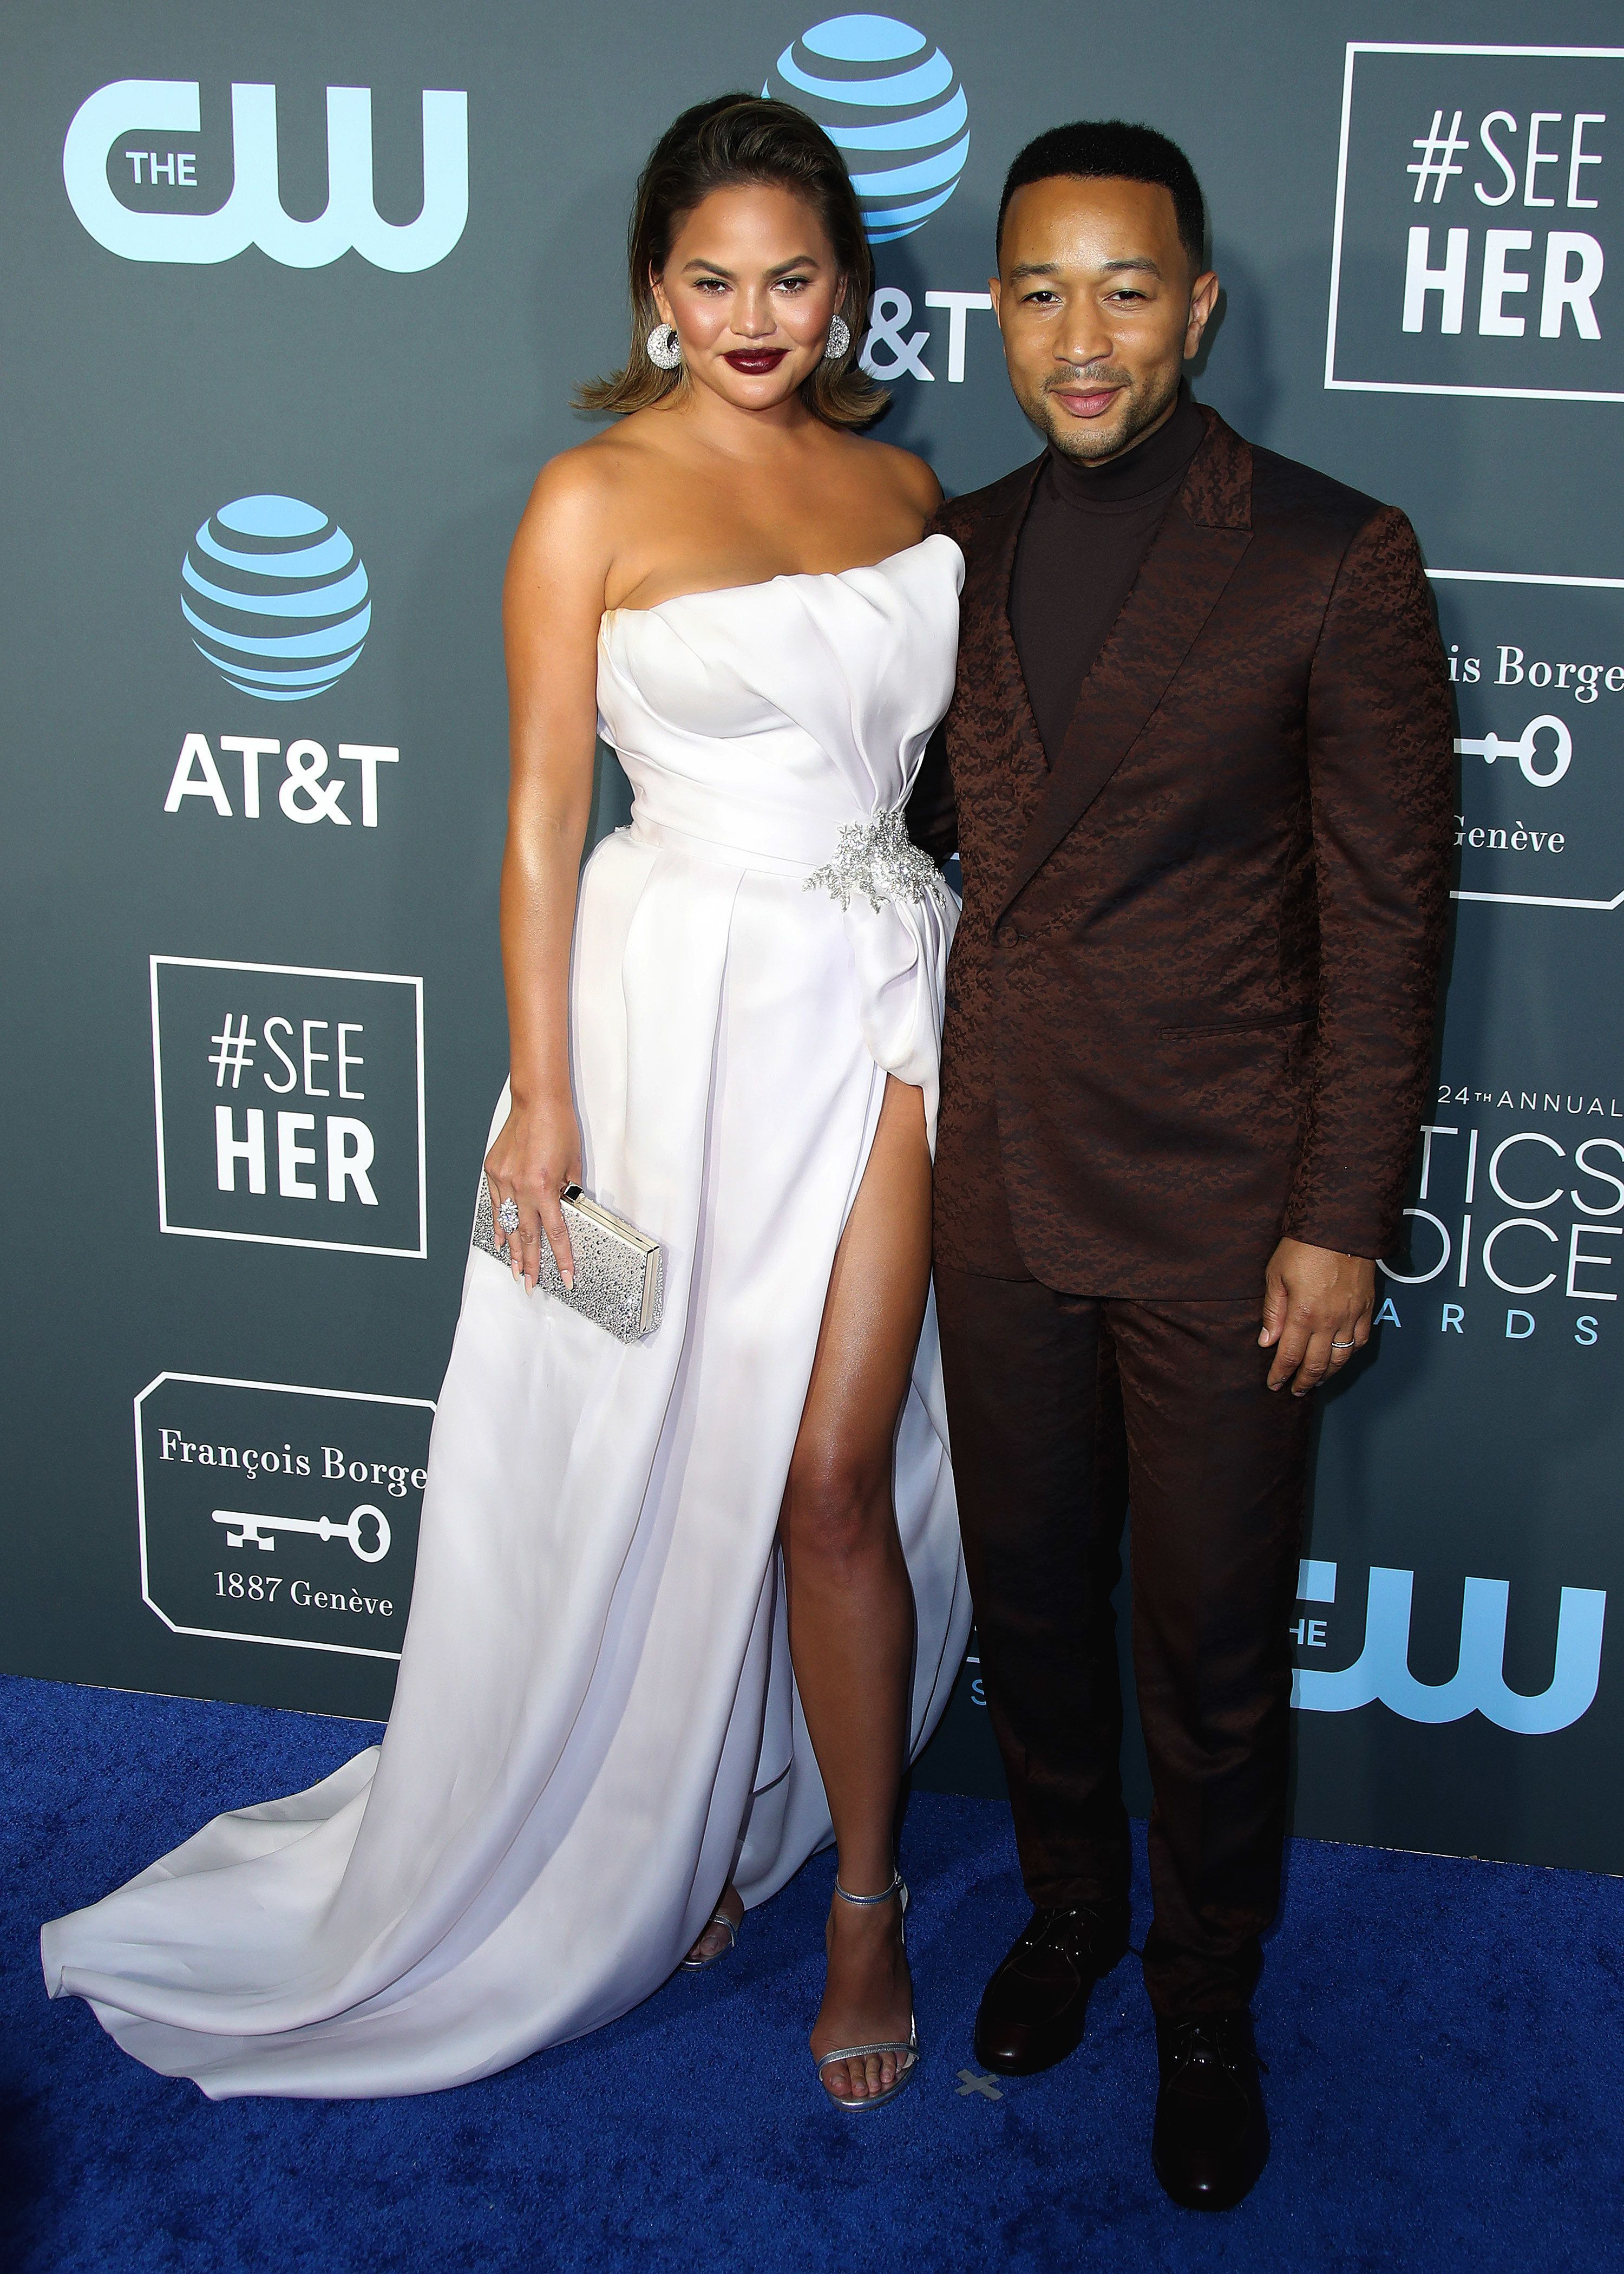 Chrissy Teigen and John Legend at the 24th Annual Critics' Choice Awards on Jan. 13, 2019, in Santa